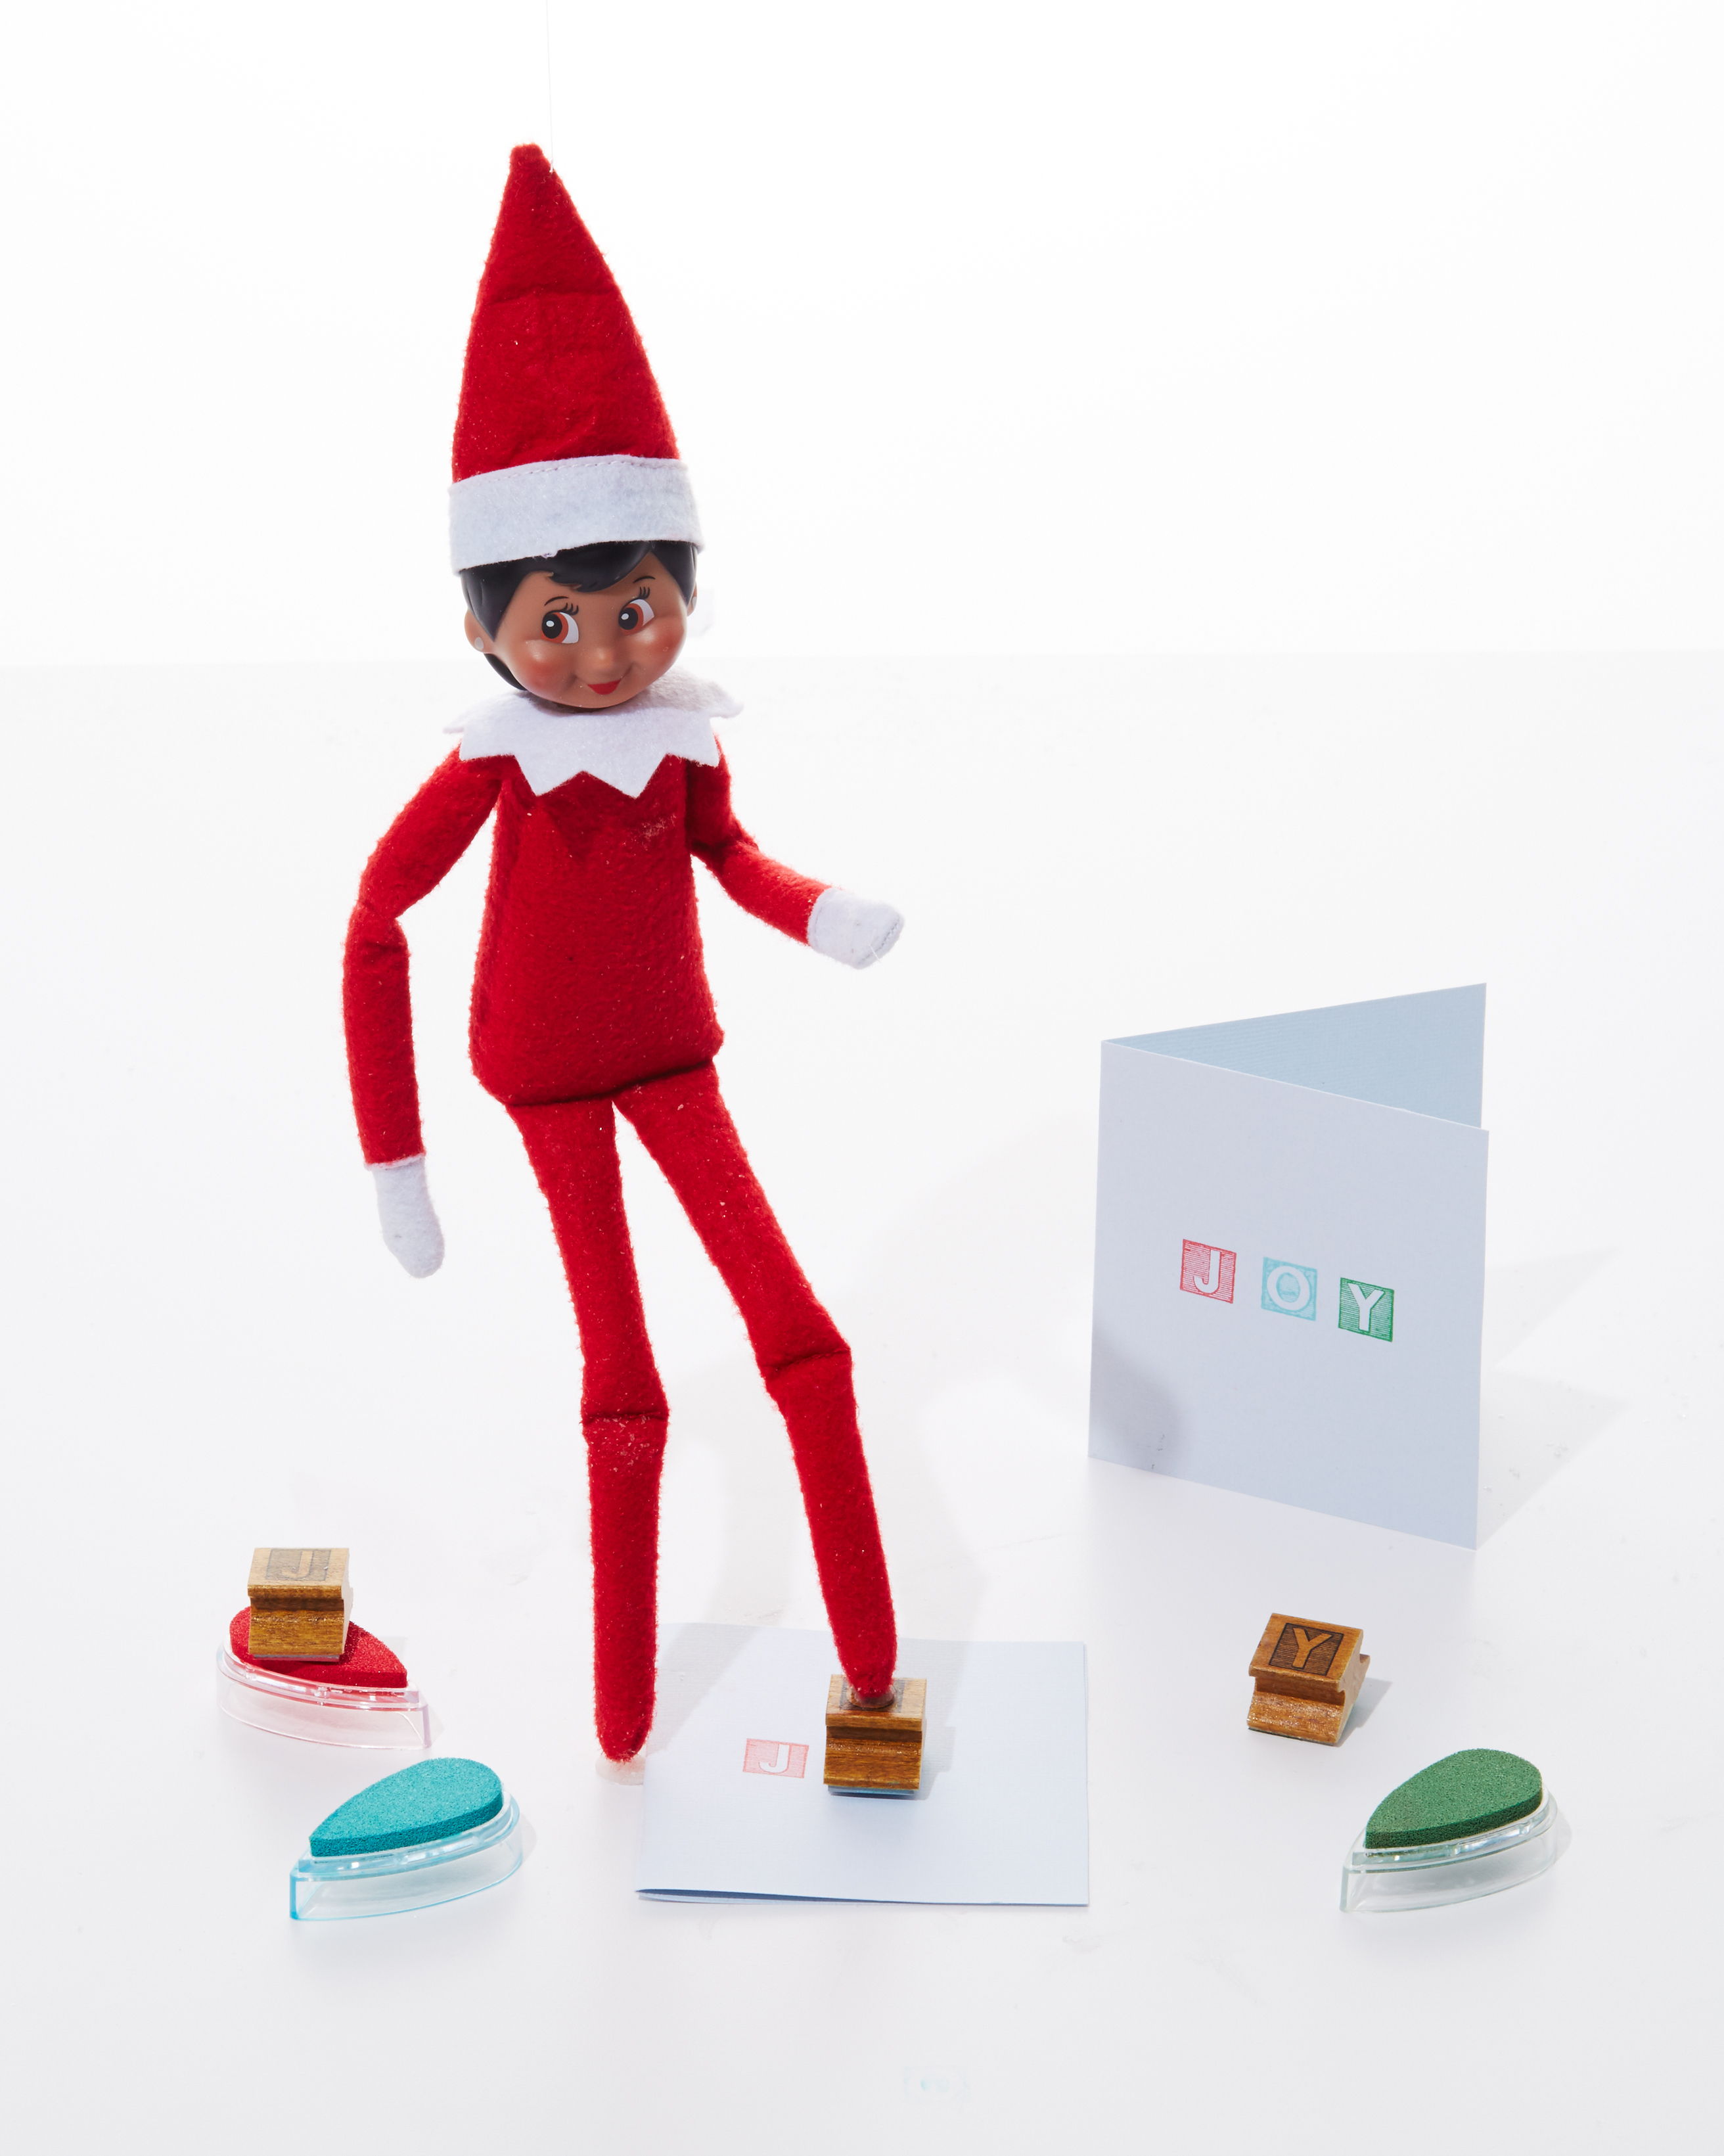 elf-on-shelf-stamping-0263-d112640-1215.jpg